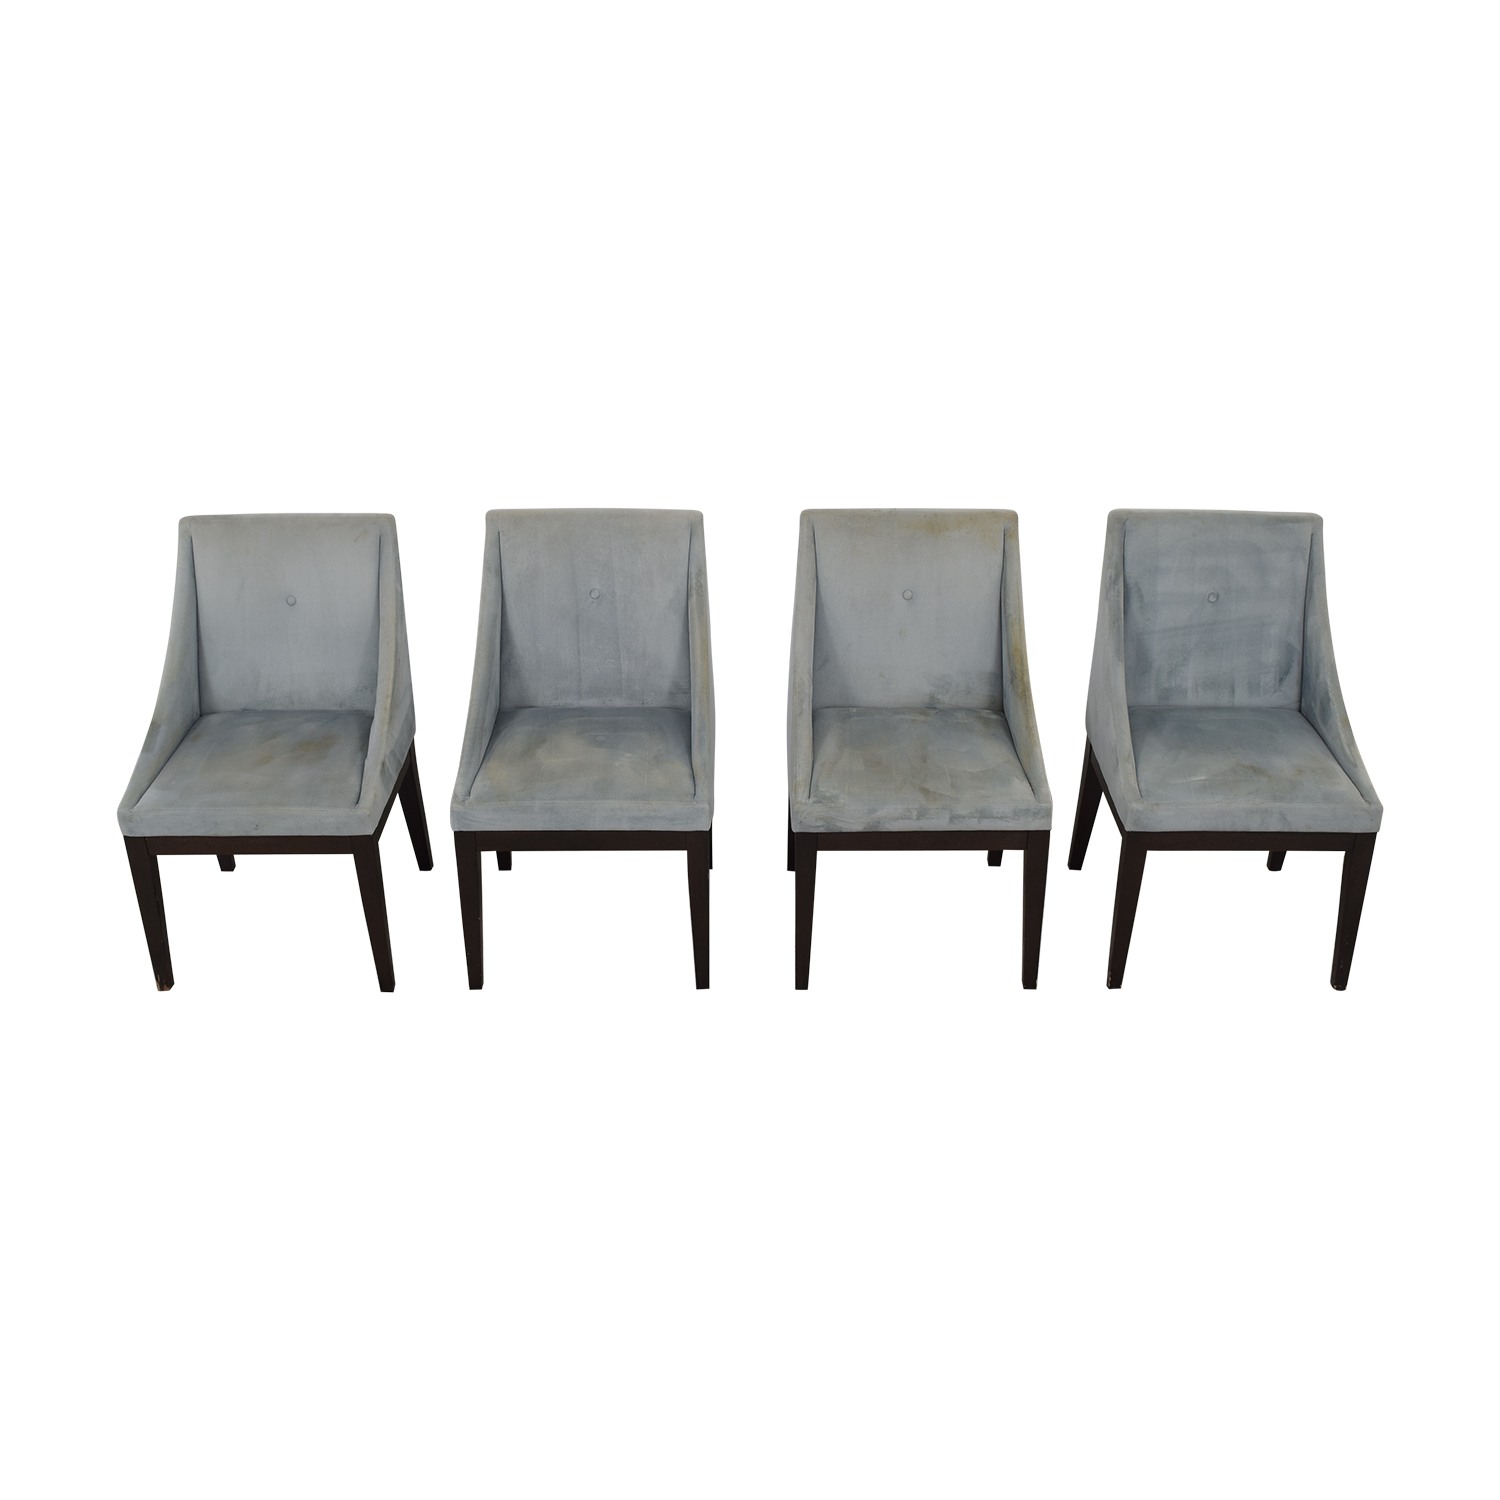 West Elm West Elm Upholstered Dining Chairs pa